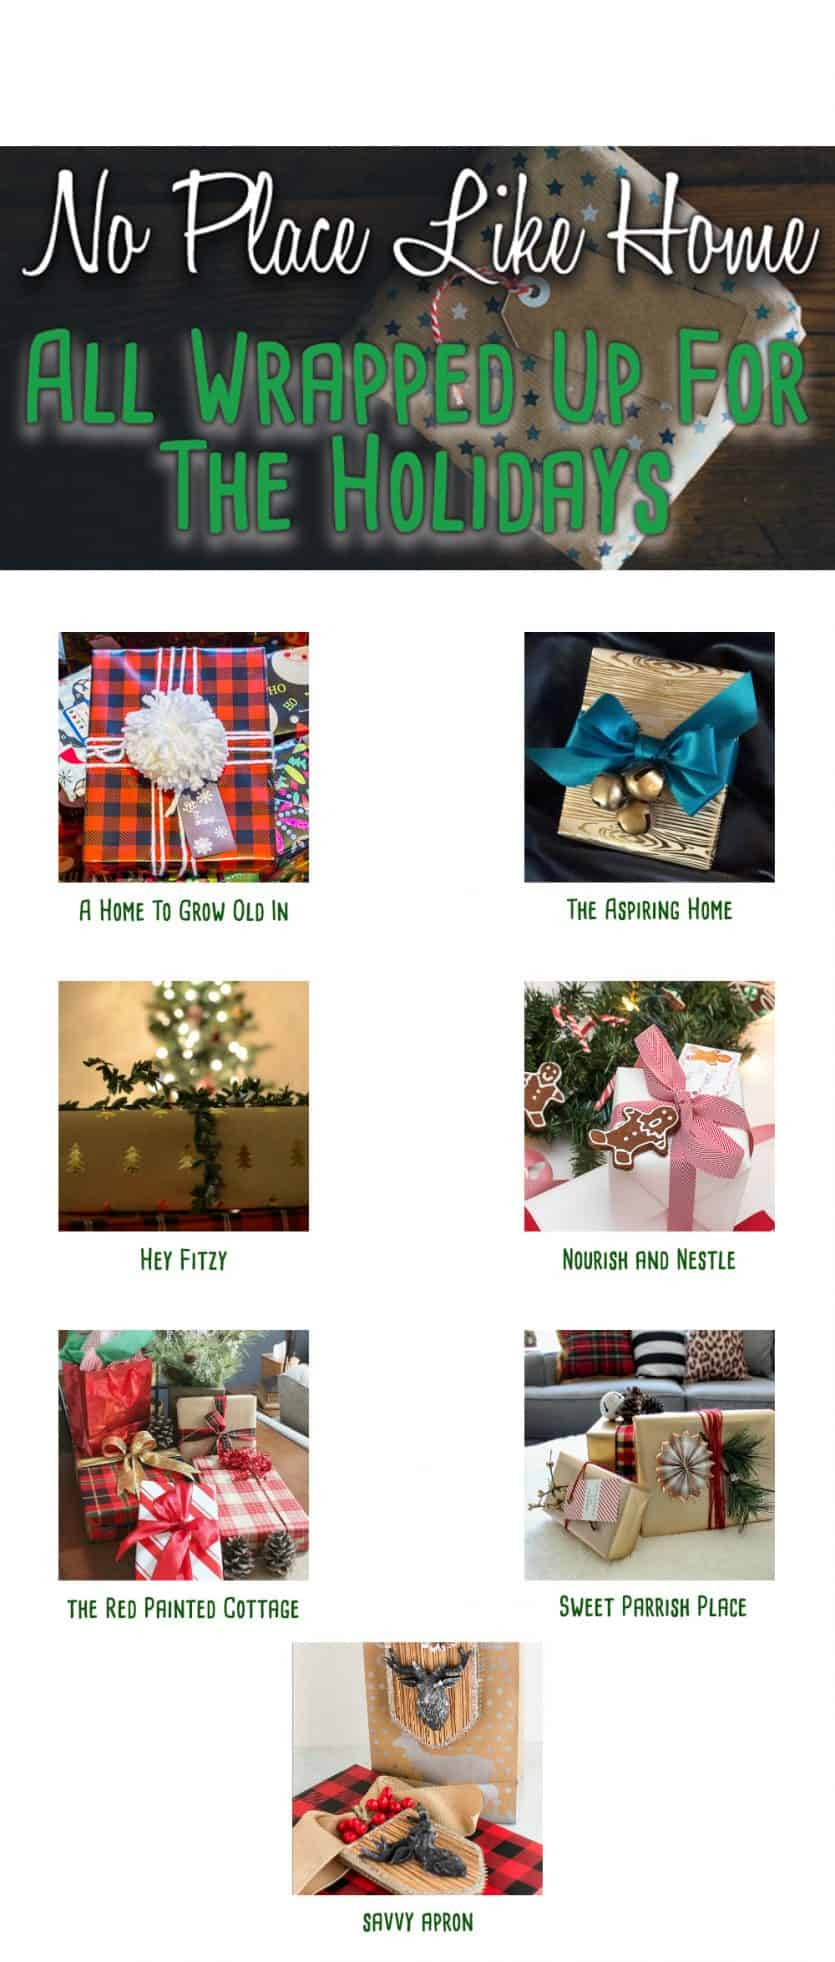 5 easy ways to make your Christmas presents look like you put much more effort into them than you did! Everyone will be excited to open one of your gifts! Pin this so you'll remember it!